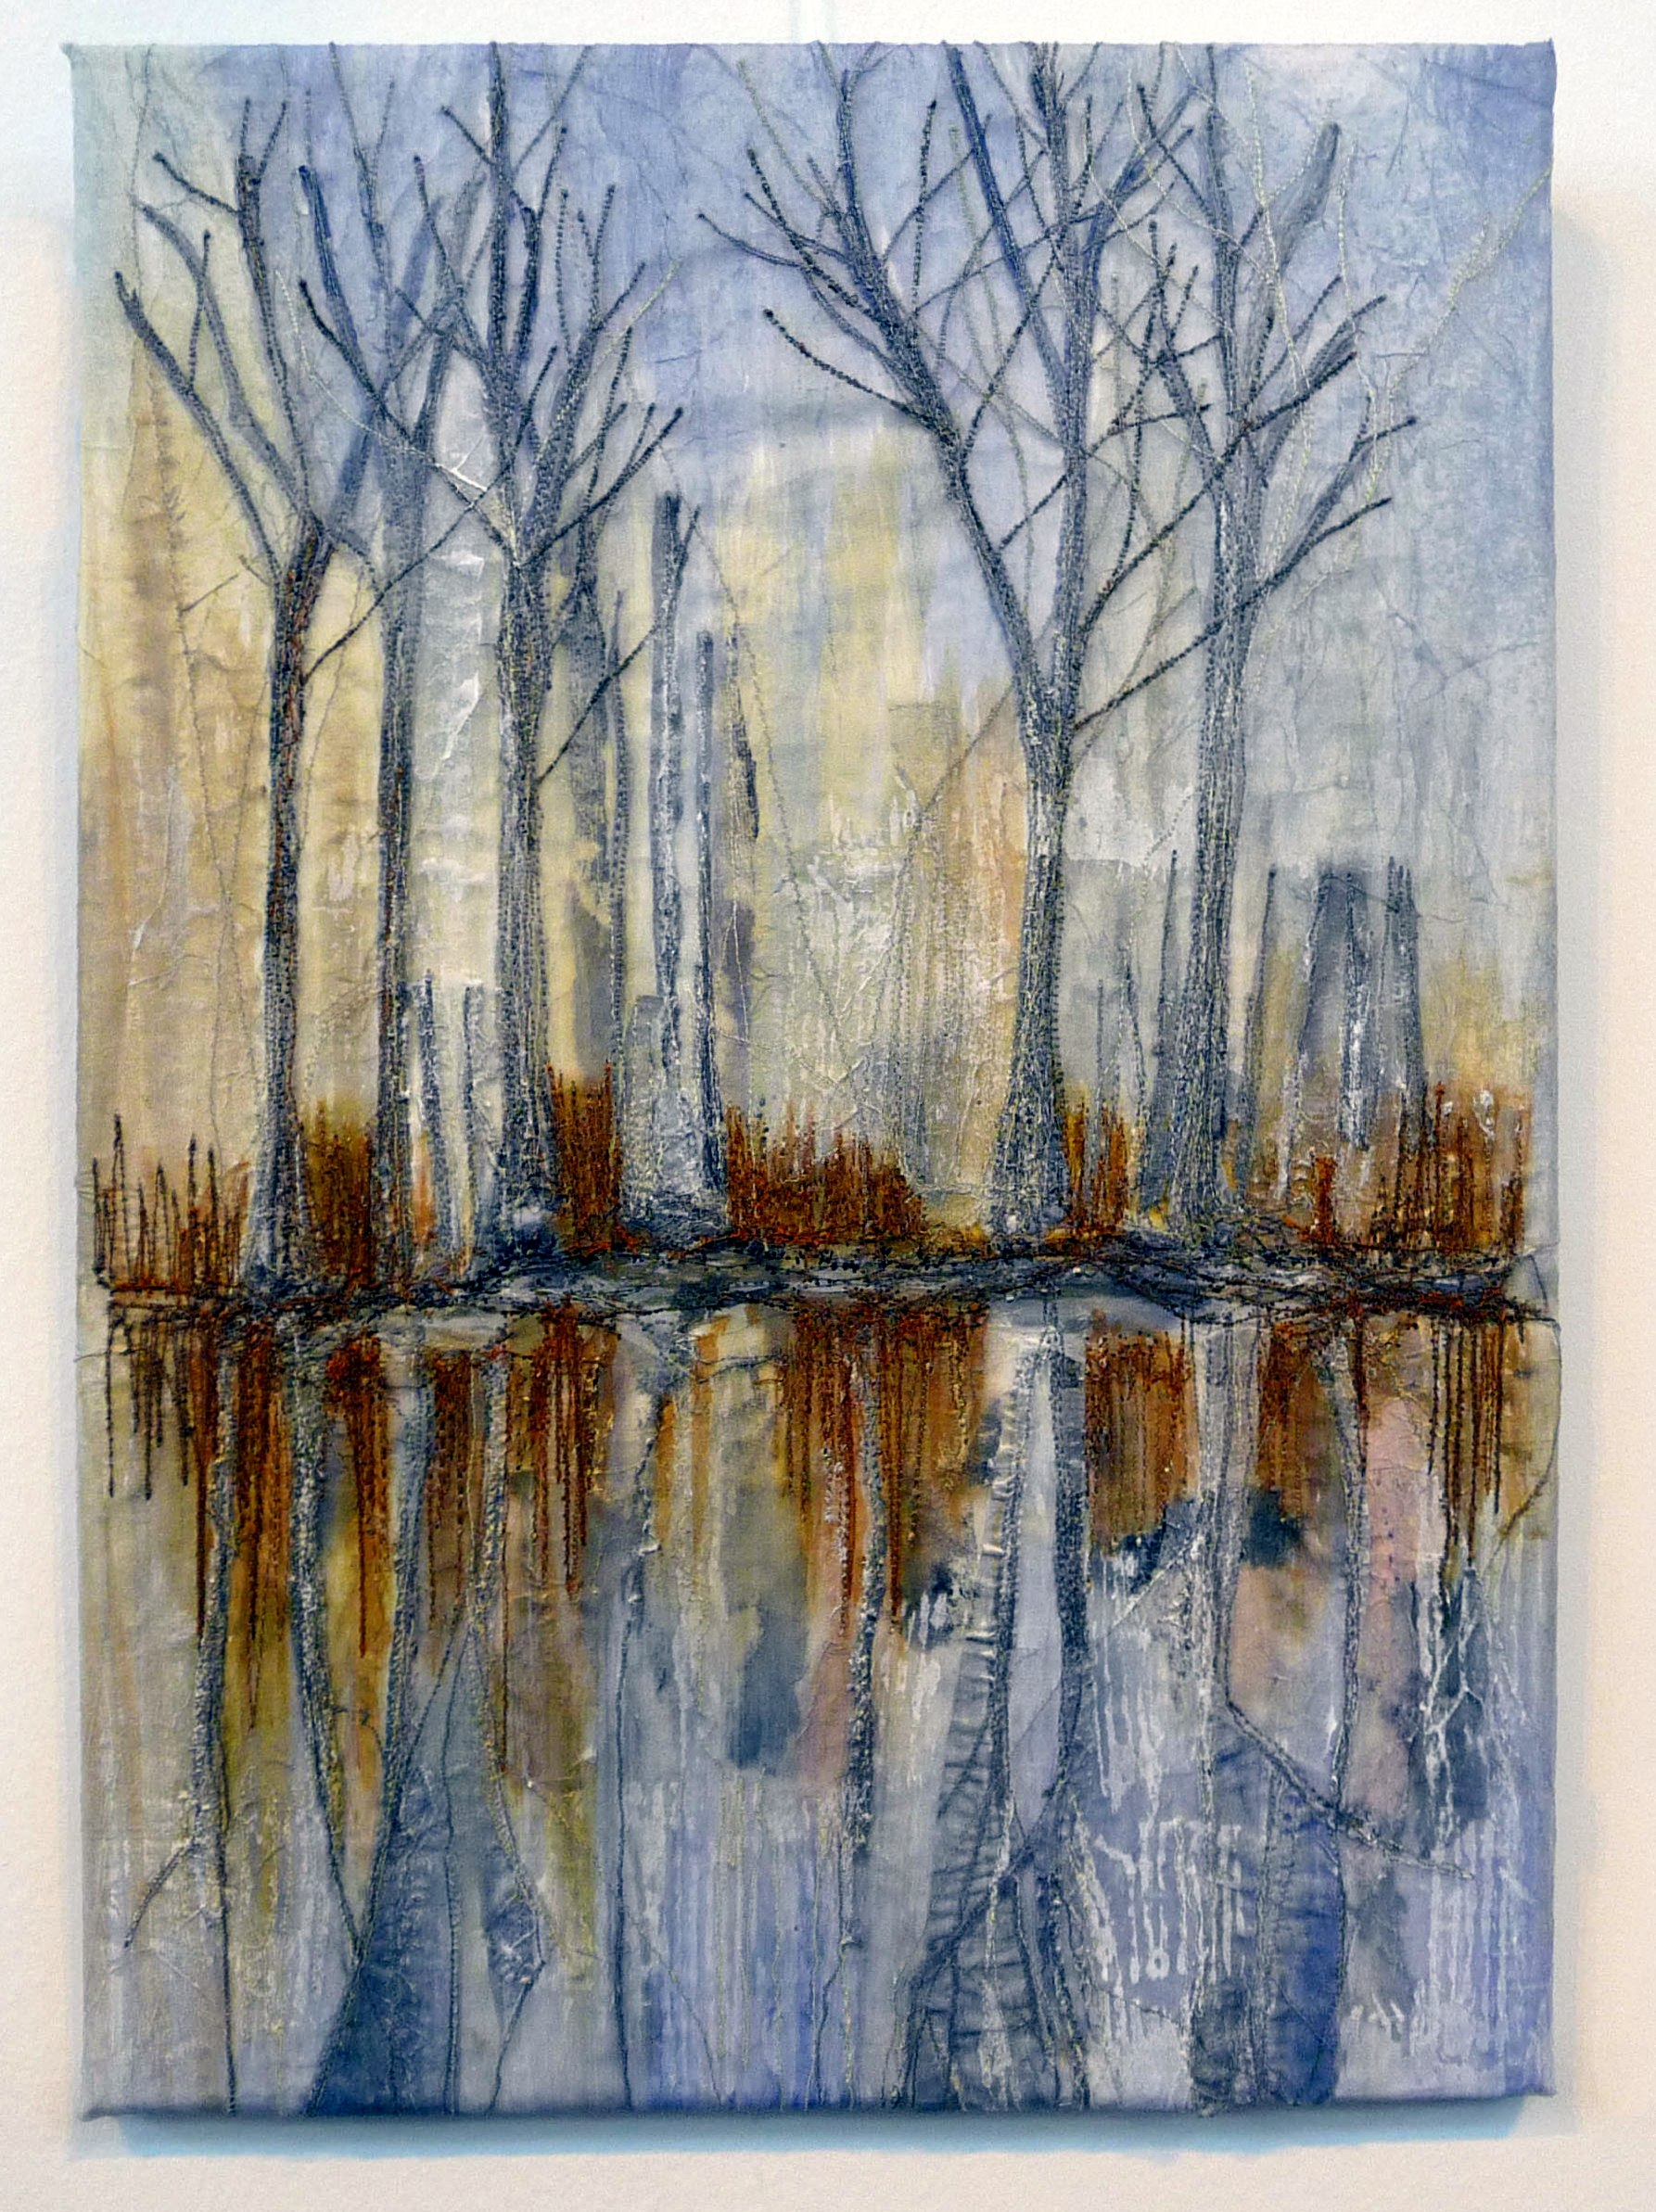 entry to Capability Brown Festival with Embroiderers' Guild, TREES, AUTUMN REFLECTIONS.... by Amanda Hislop